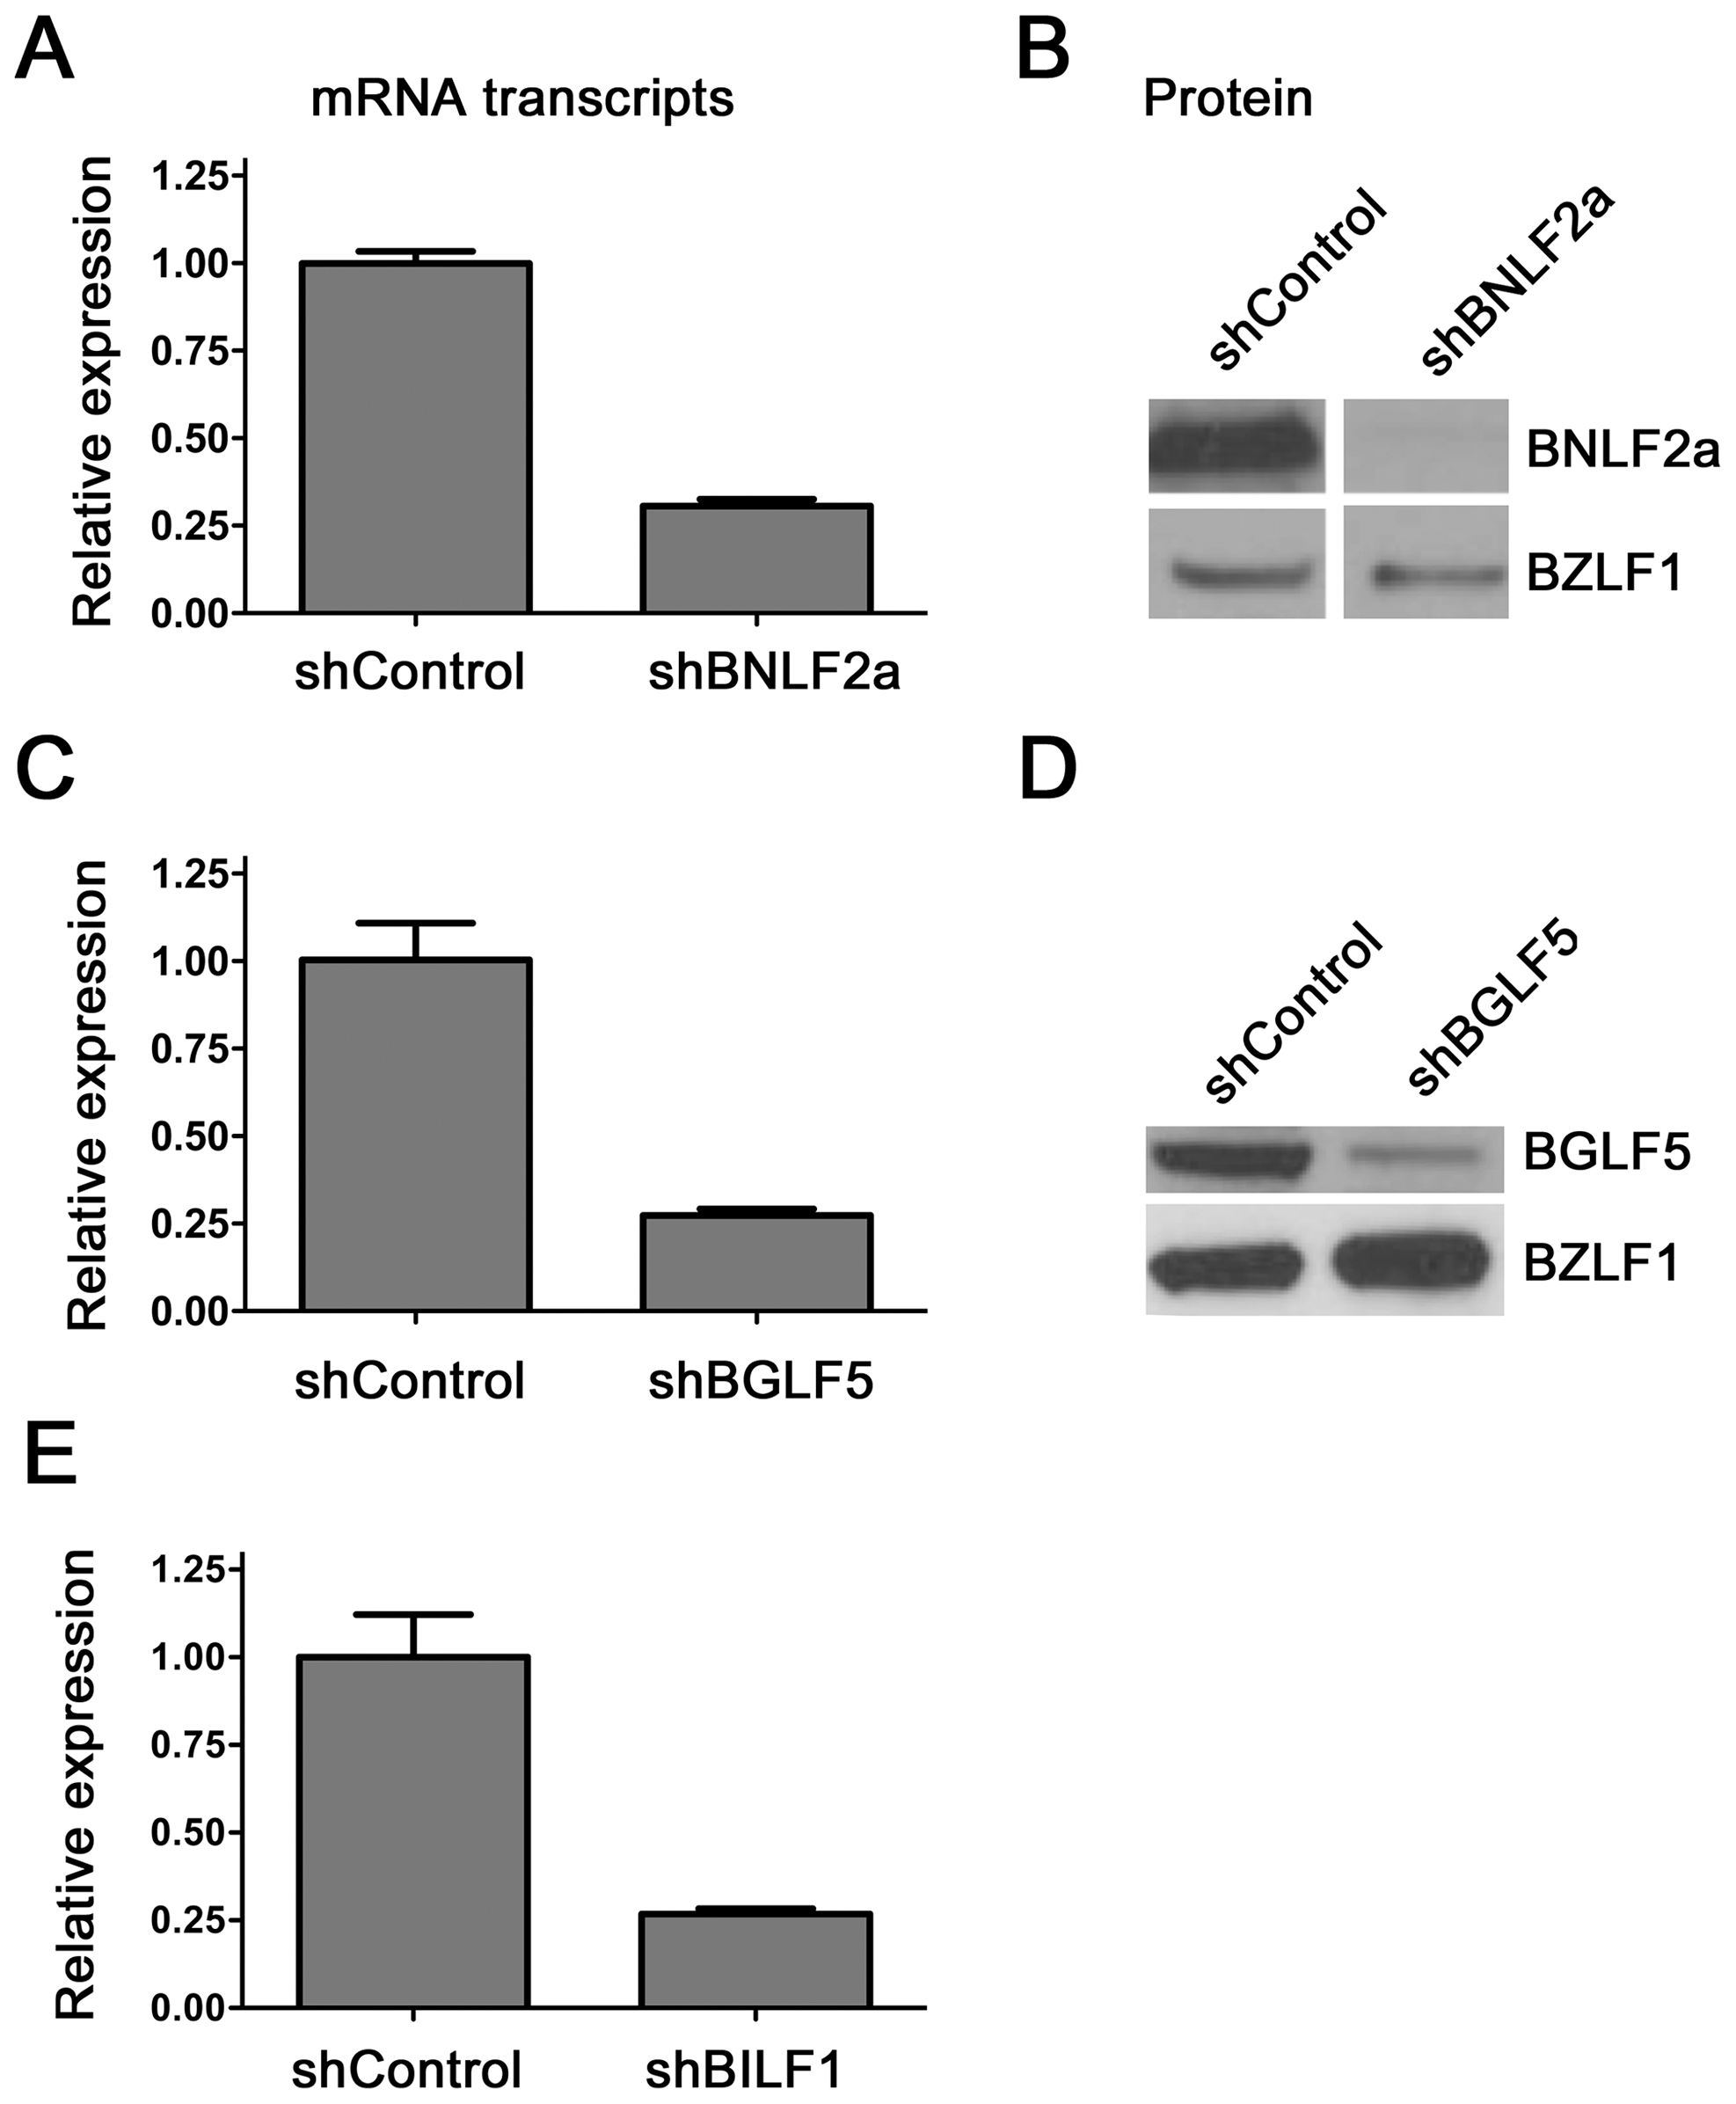 Knockdown of BNL2a, BILF1 and BGLF5 in transduced LCLs.